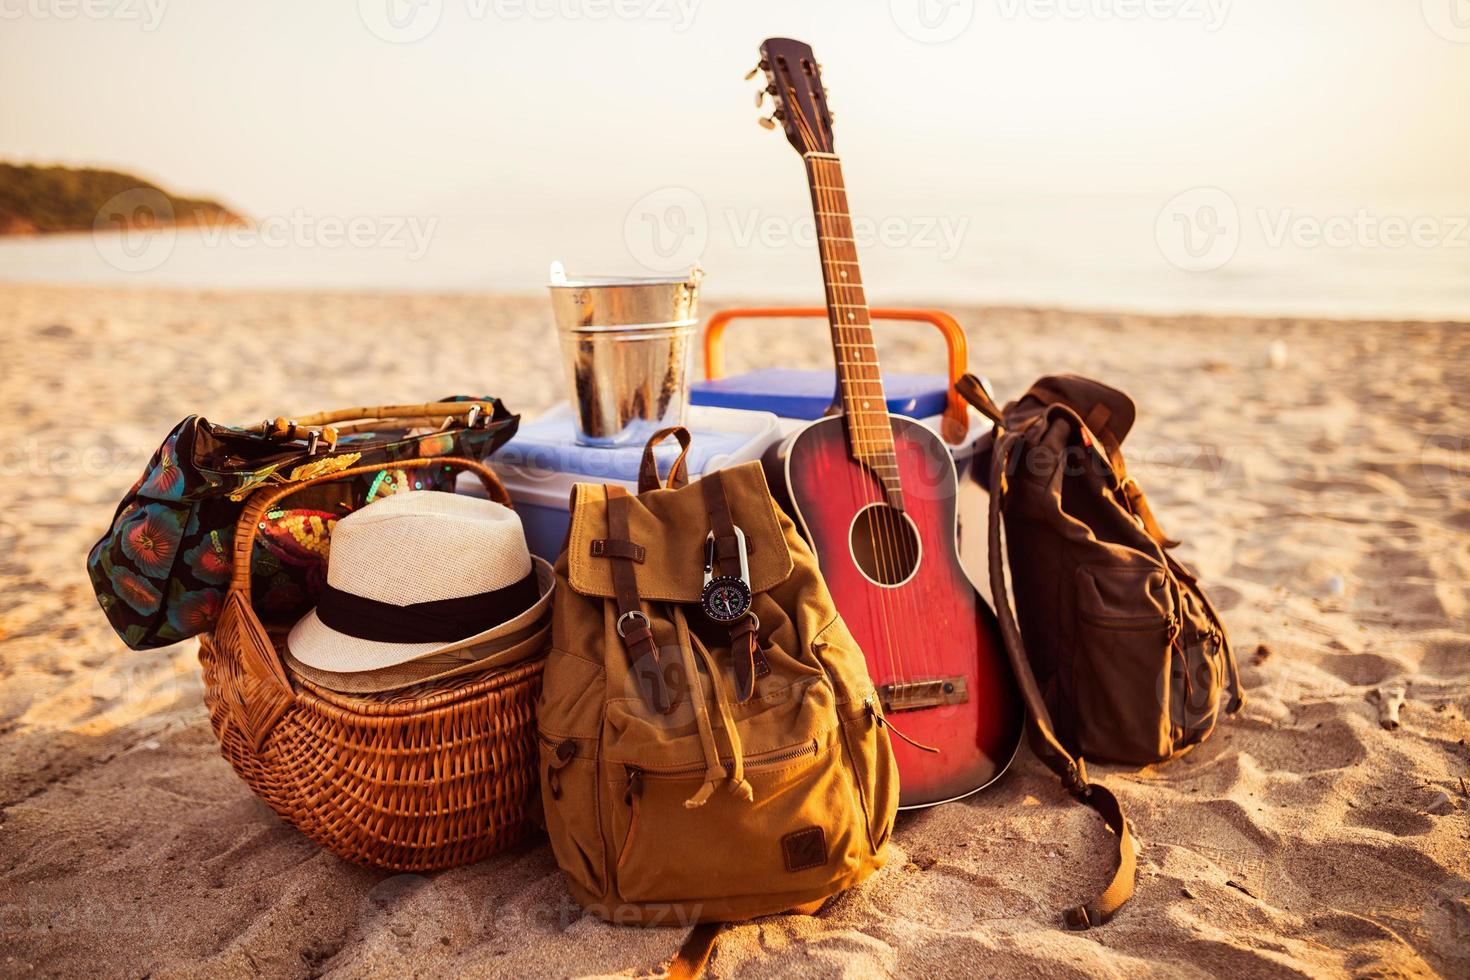 Guitar,backpack and everything is ready for party. photo